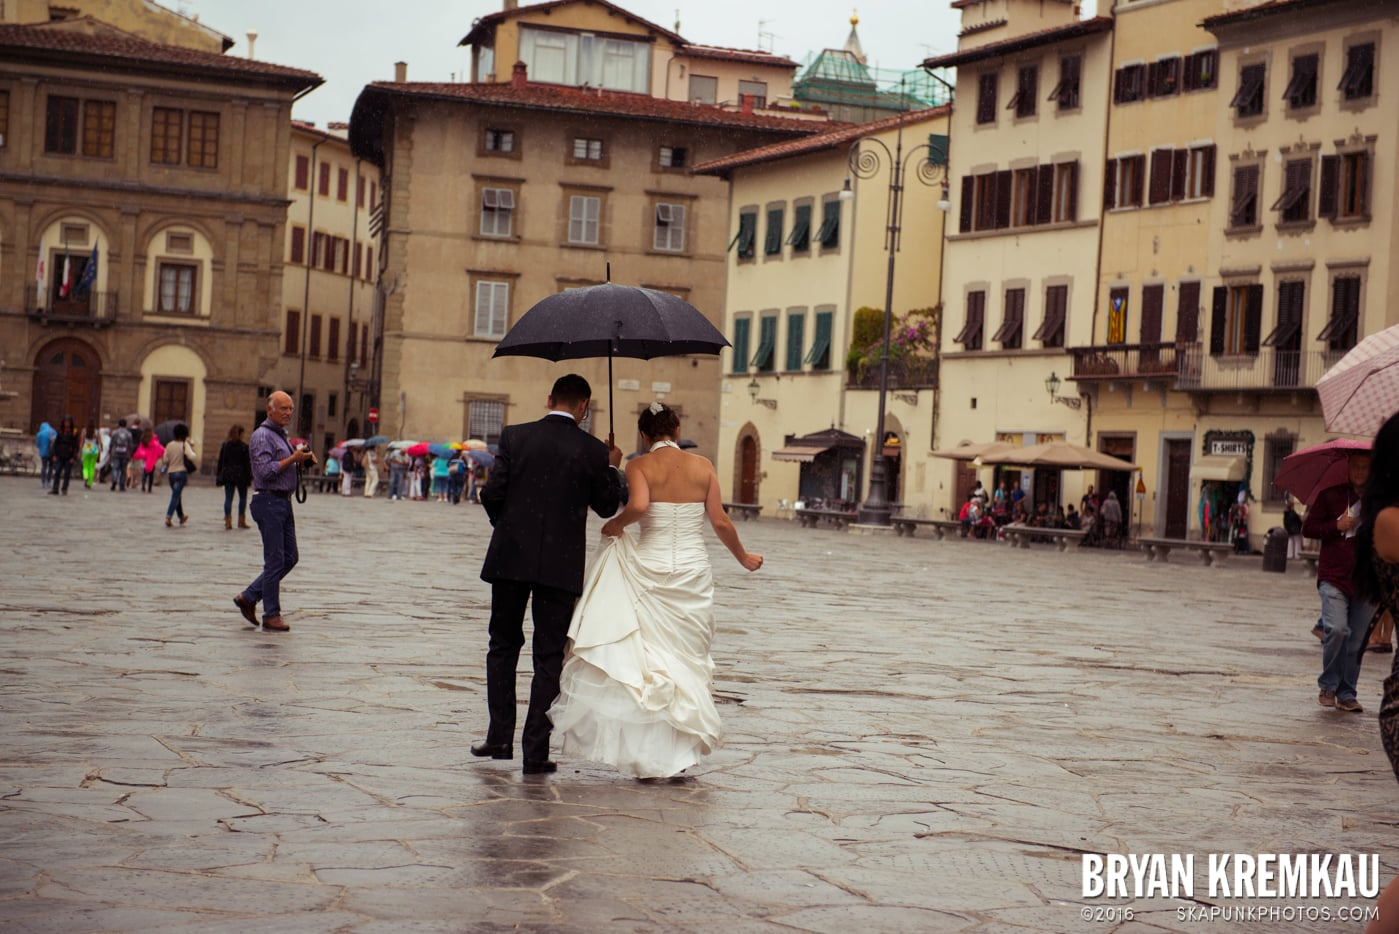 Italy Vacation - Day 7: Florence - 9.15.13 (62)